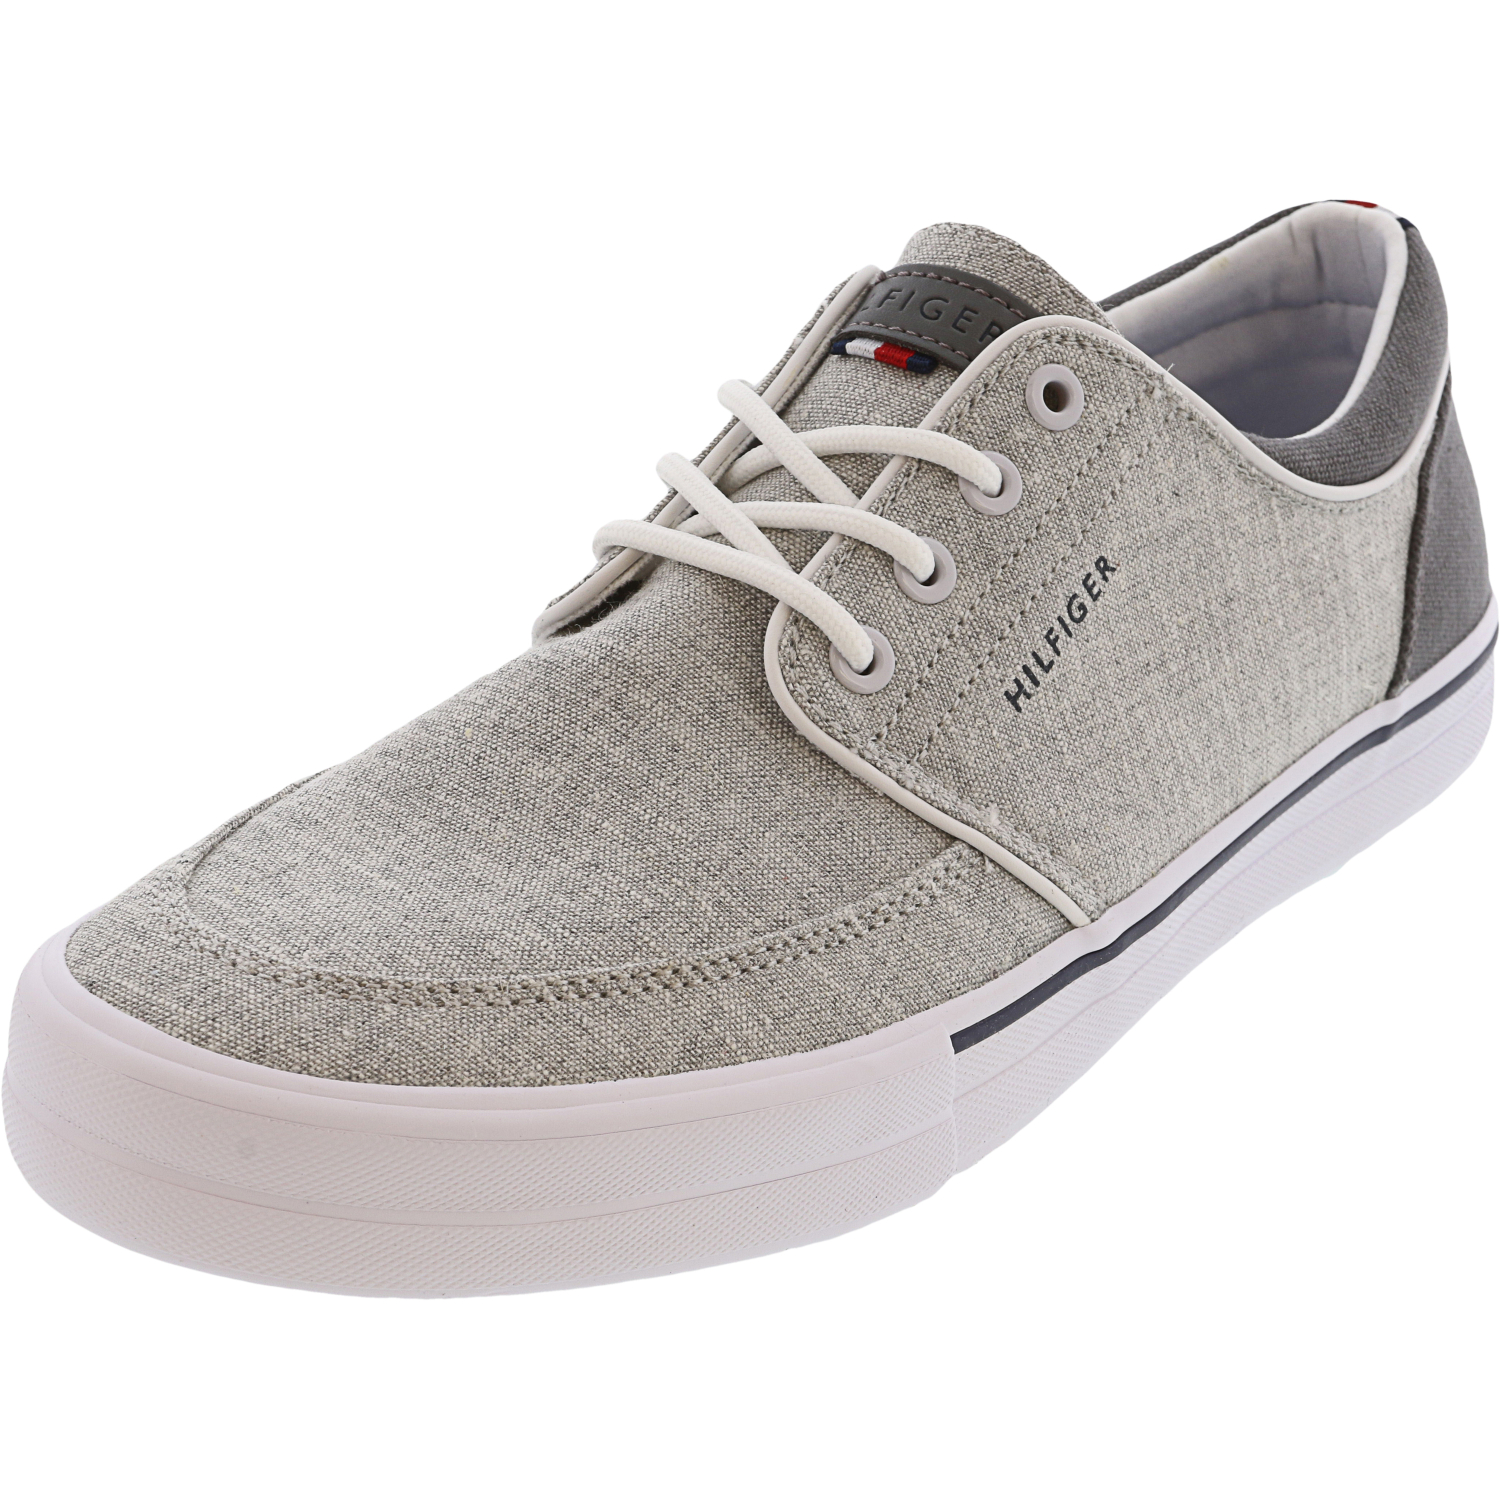 Tommy Hilfiger Men's Redd2 Fabric Light Gray Ankle-High Canvas Slip-On Shoes - 7M